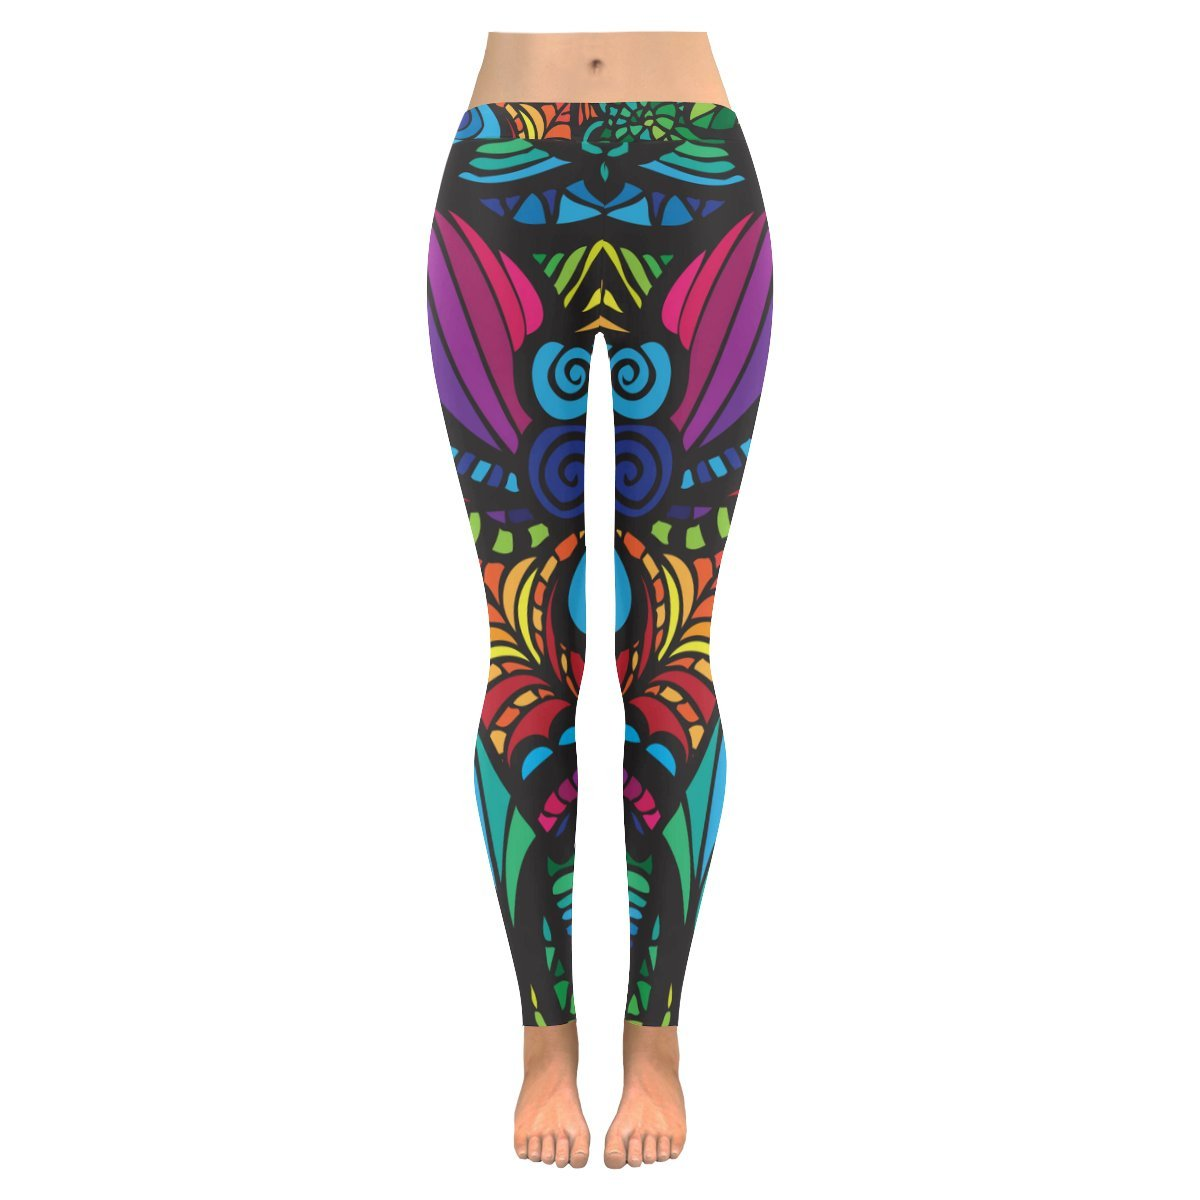 94772dcd7b1651 Zenzzle Mosaic vector pattern women Low Rise outdoor Leggings plus size:  Amazon.co.uk: Clothing